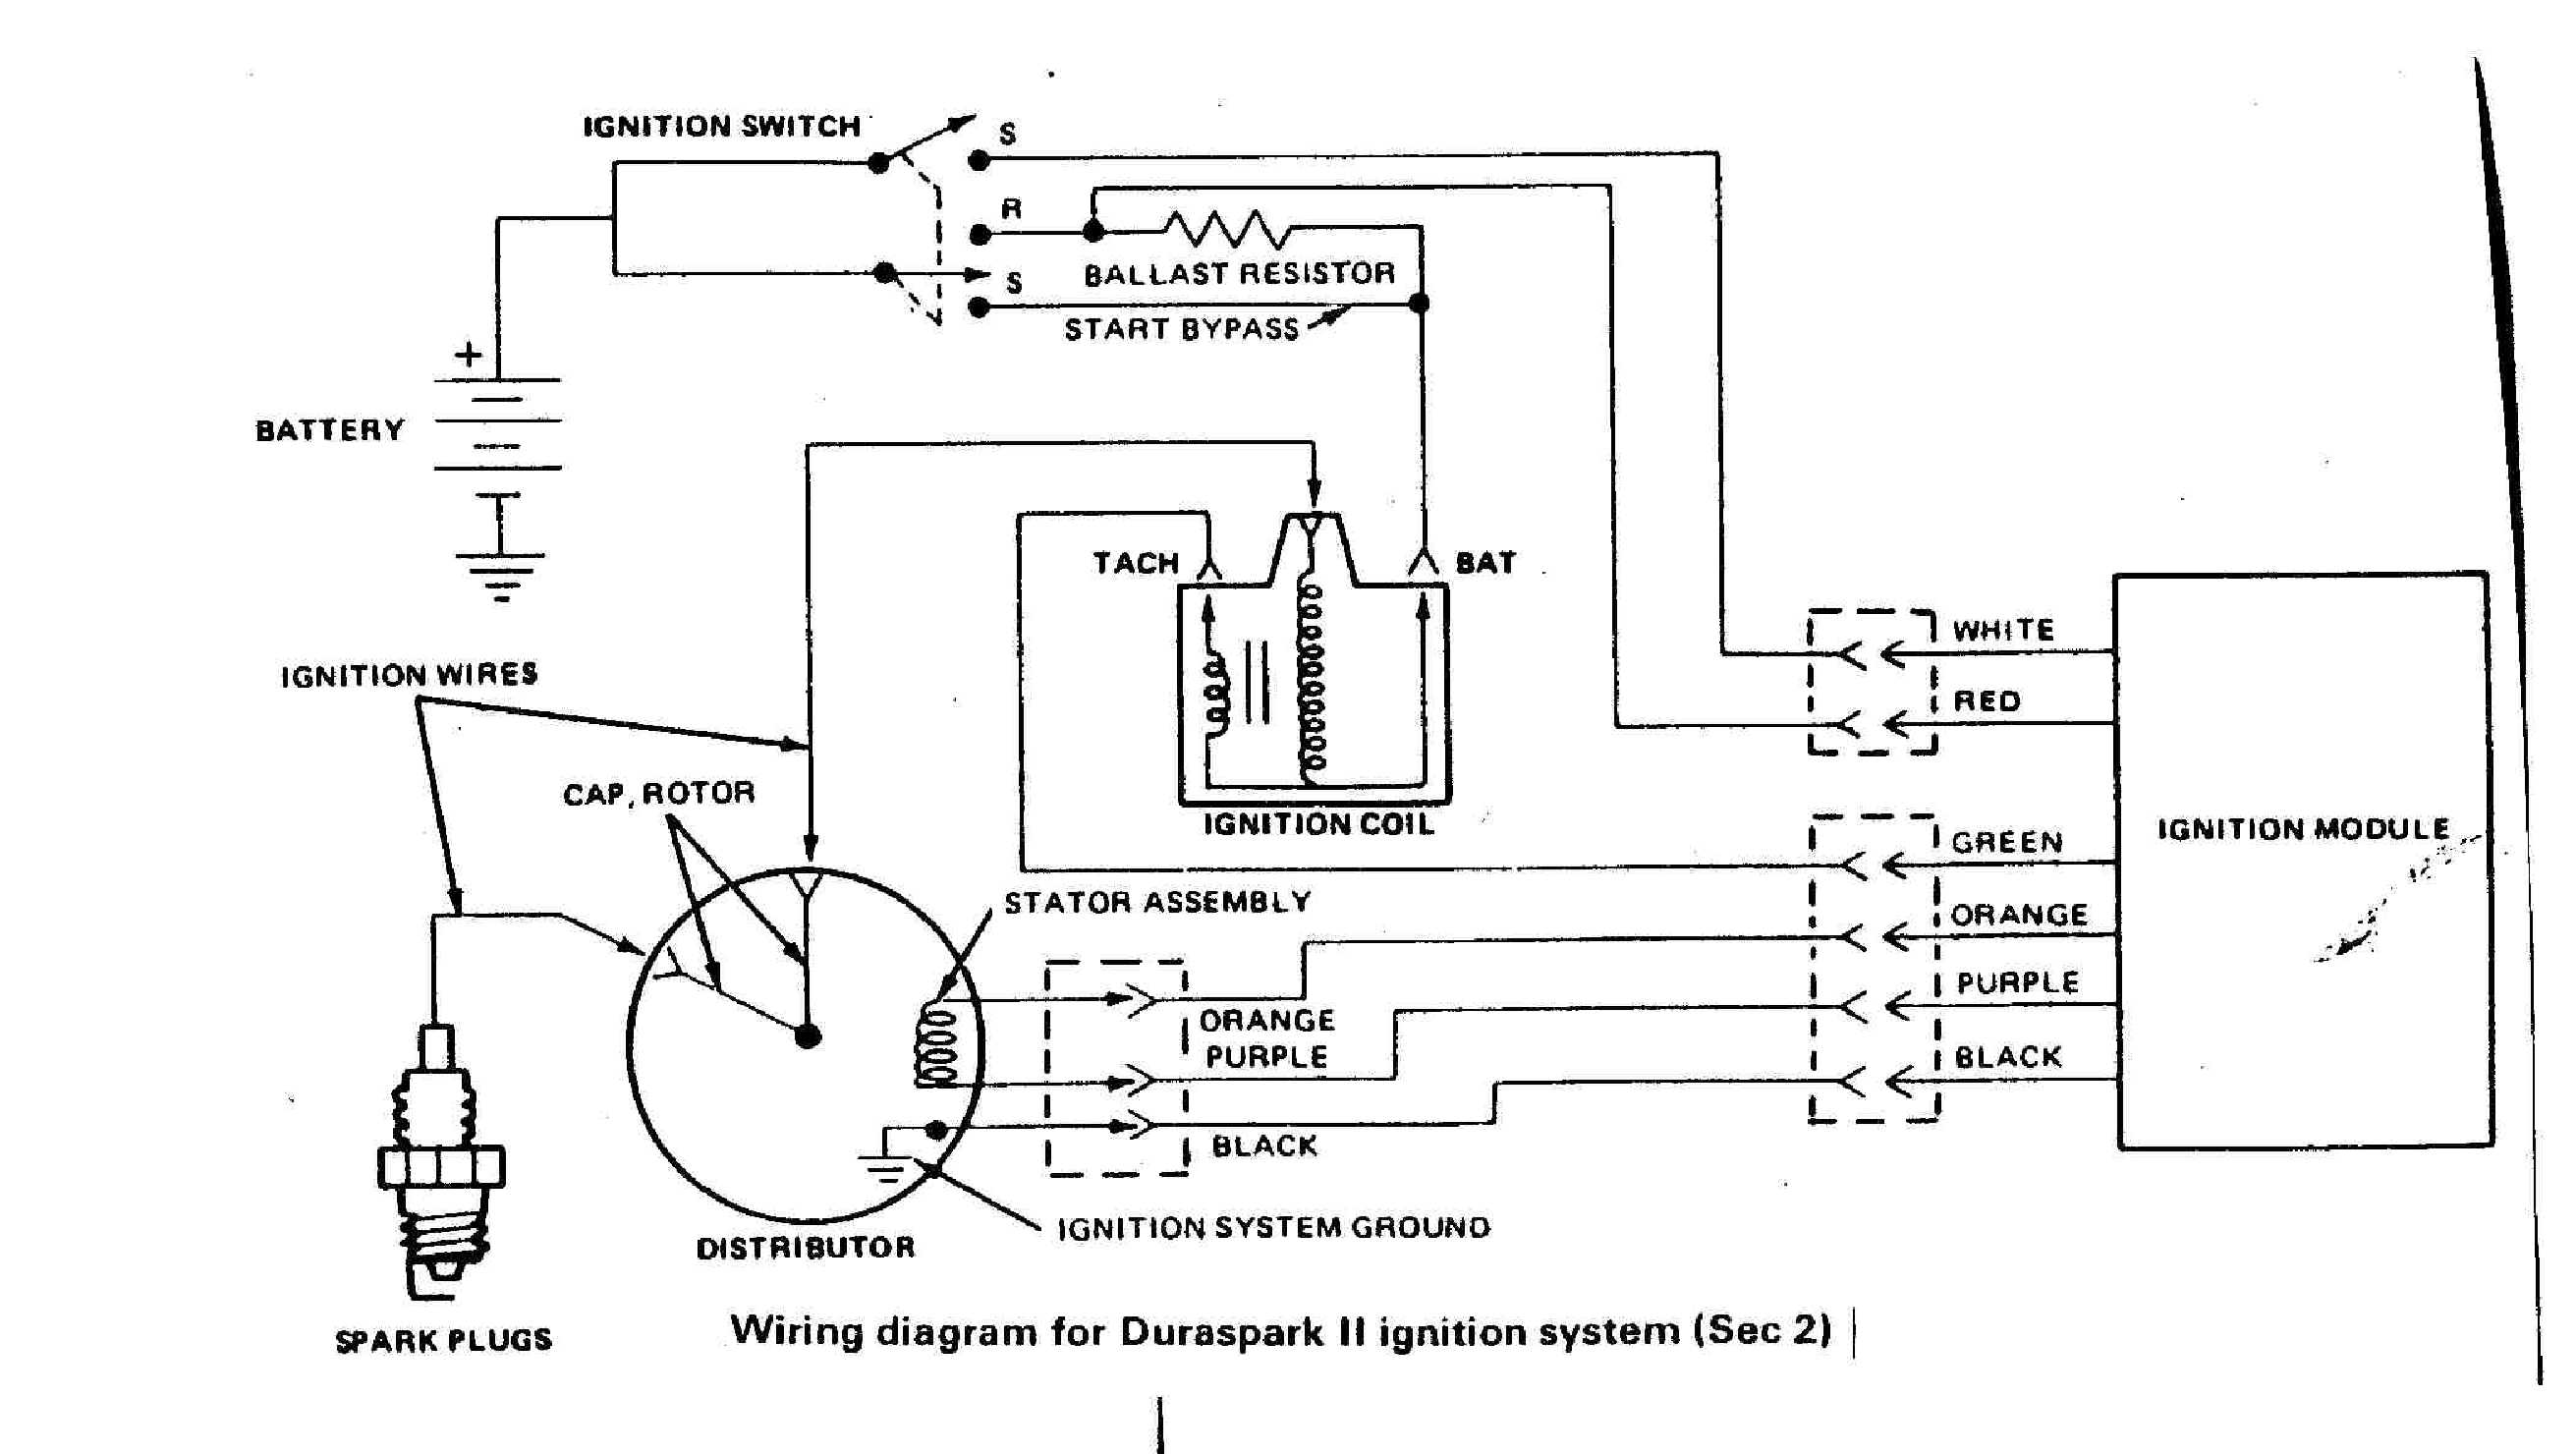 Diagram Duraspark Ignition Wiring Question